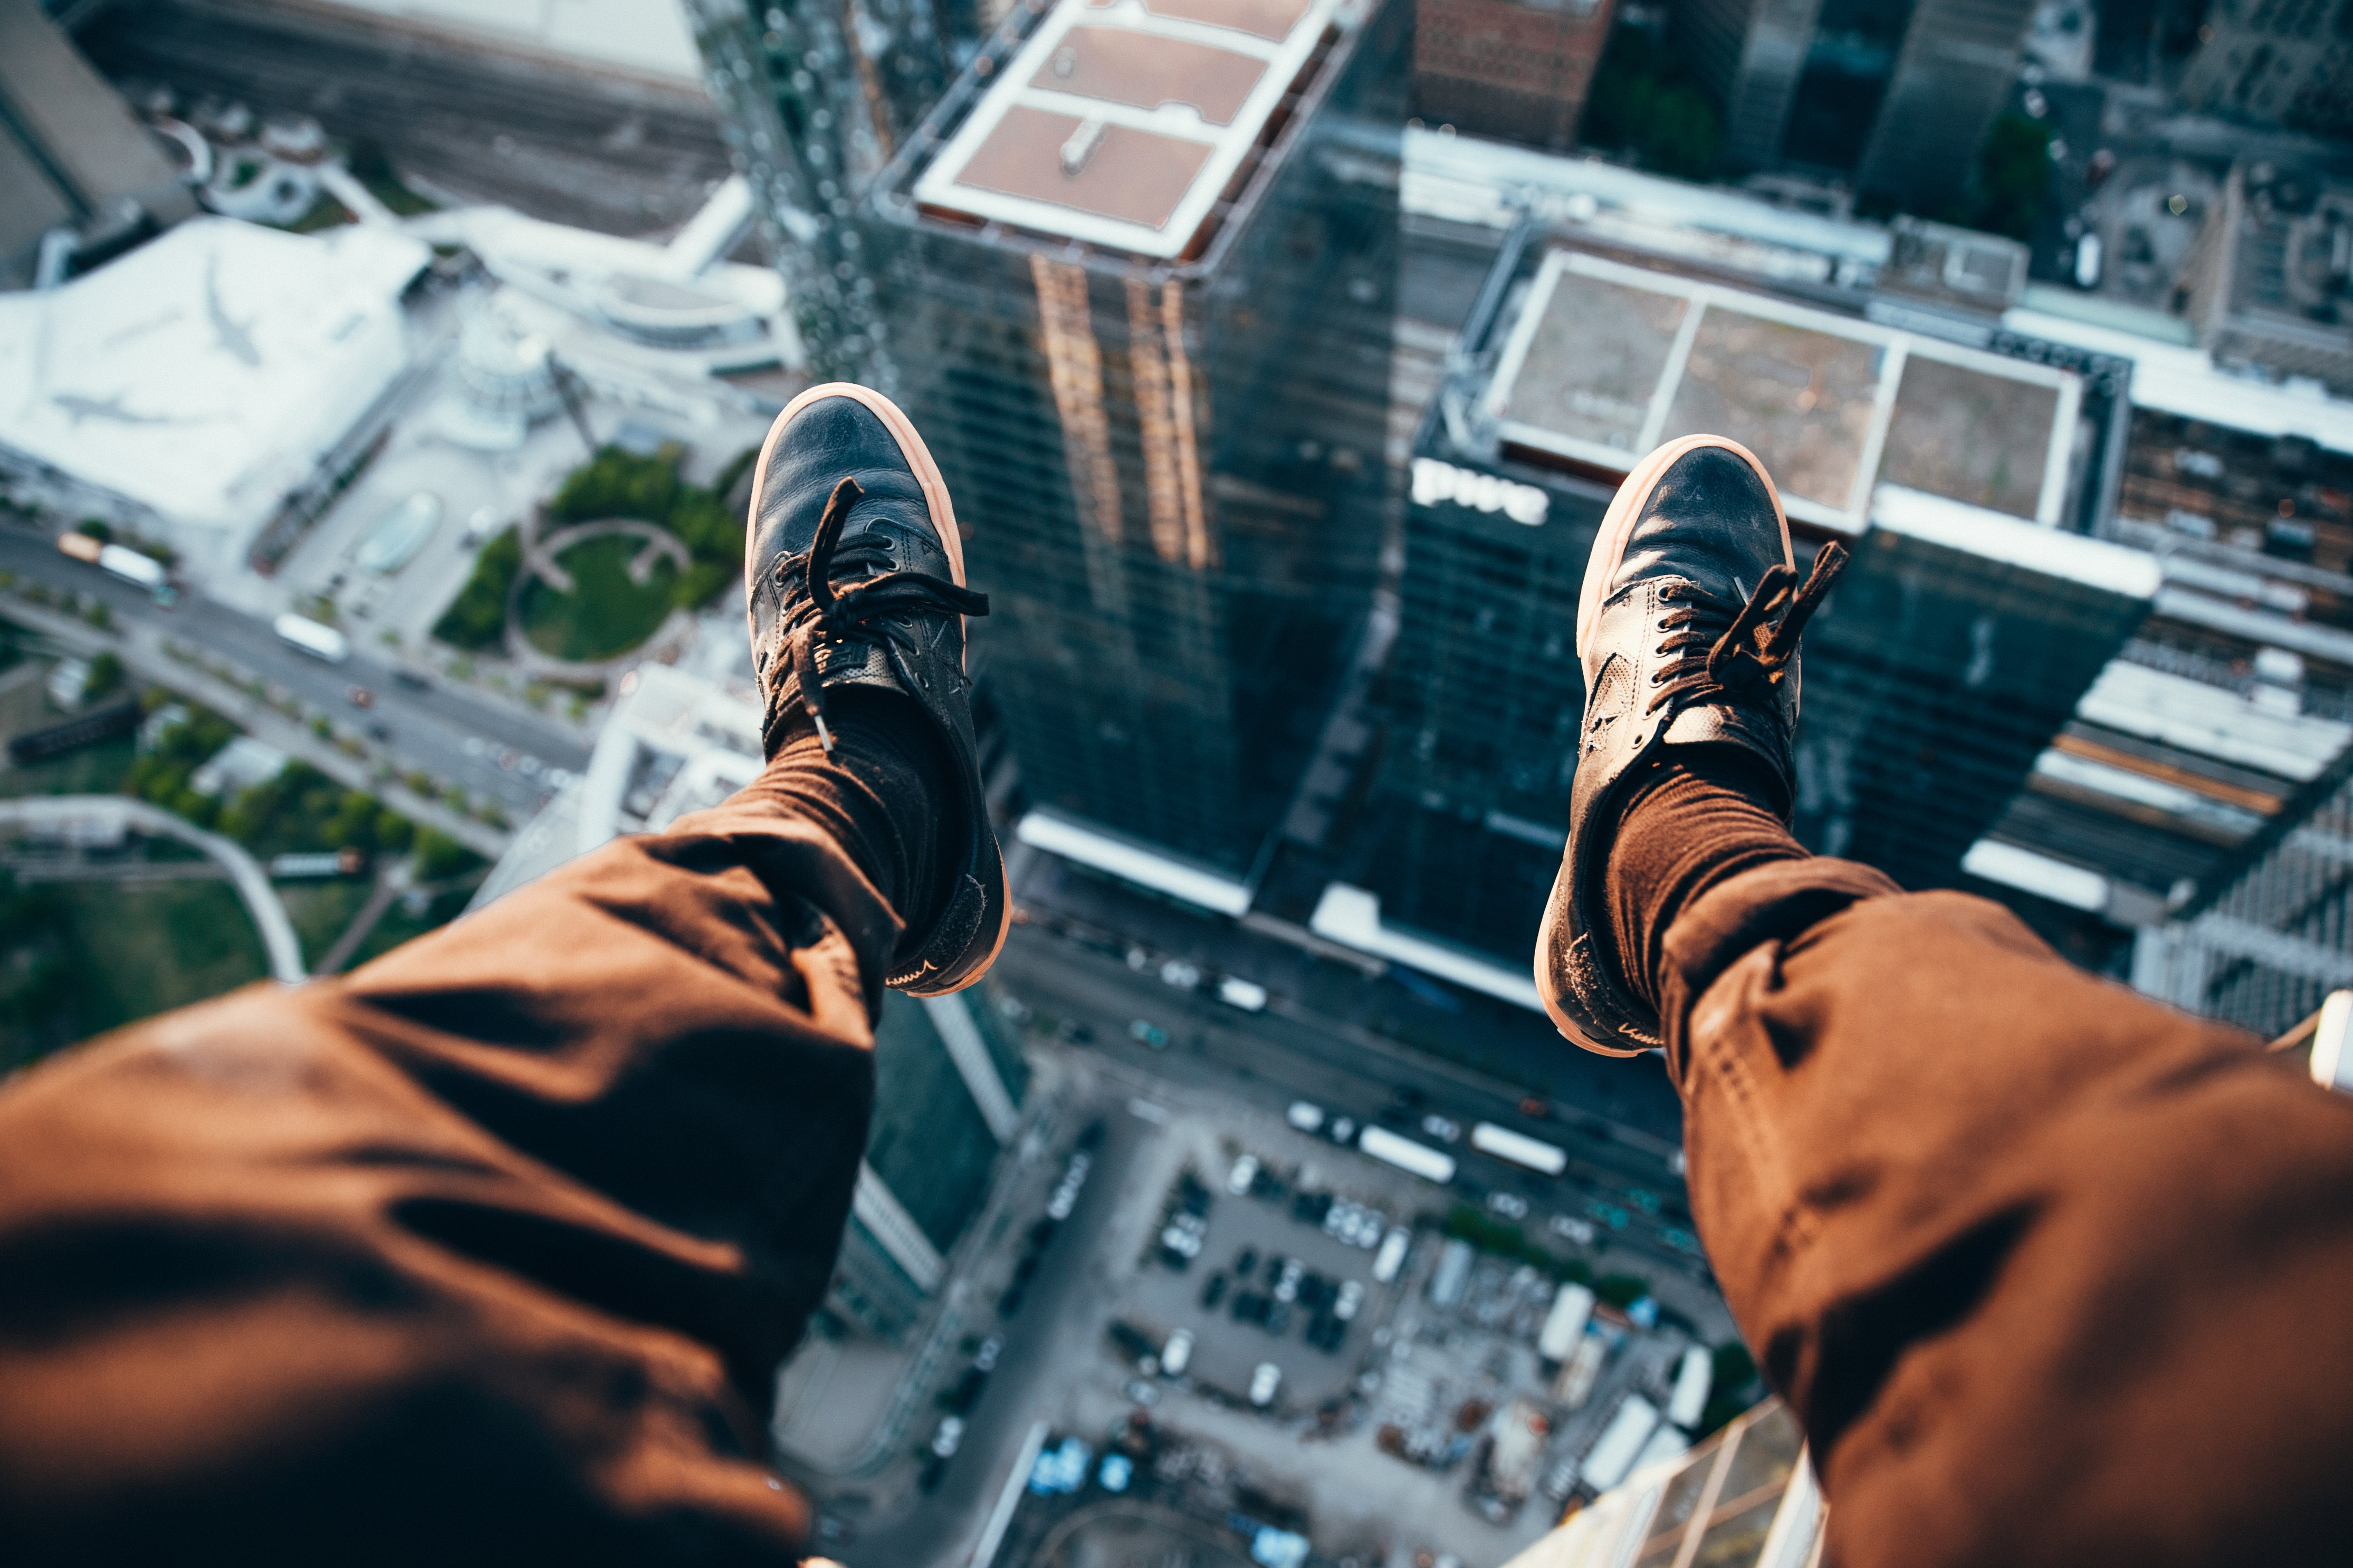 rooftopper-looking-down_Photo by Brodie Vissers from Burst